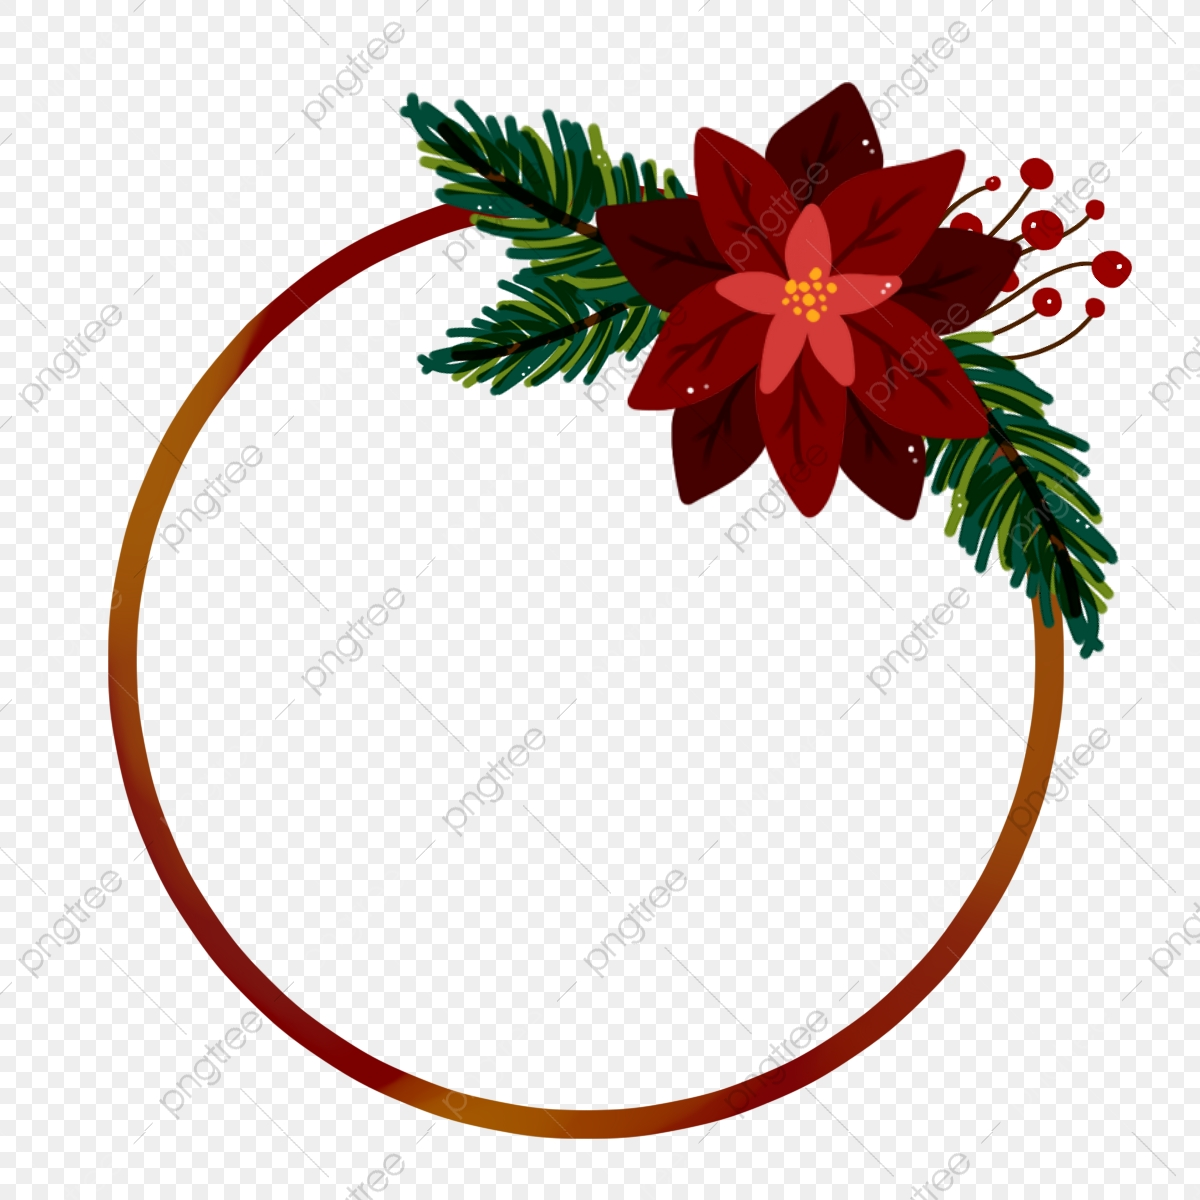 Winter Poinsettia Flower Bouquet With Circle Frame For Christmas Wreath Wreath Poinsettia Poinsettia Flower Png Transparent Clipart Image And Psd File For Free Download